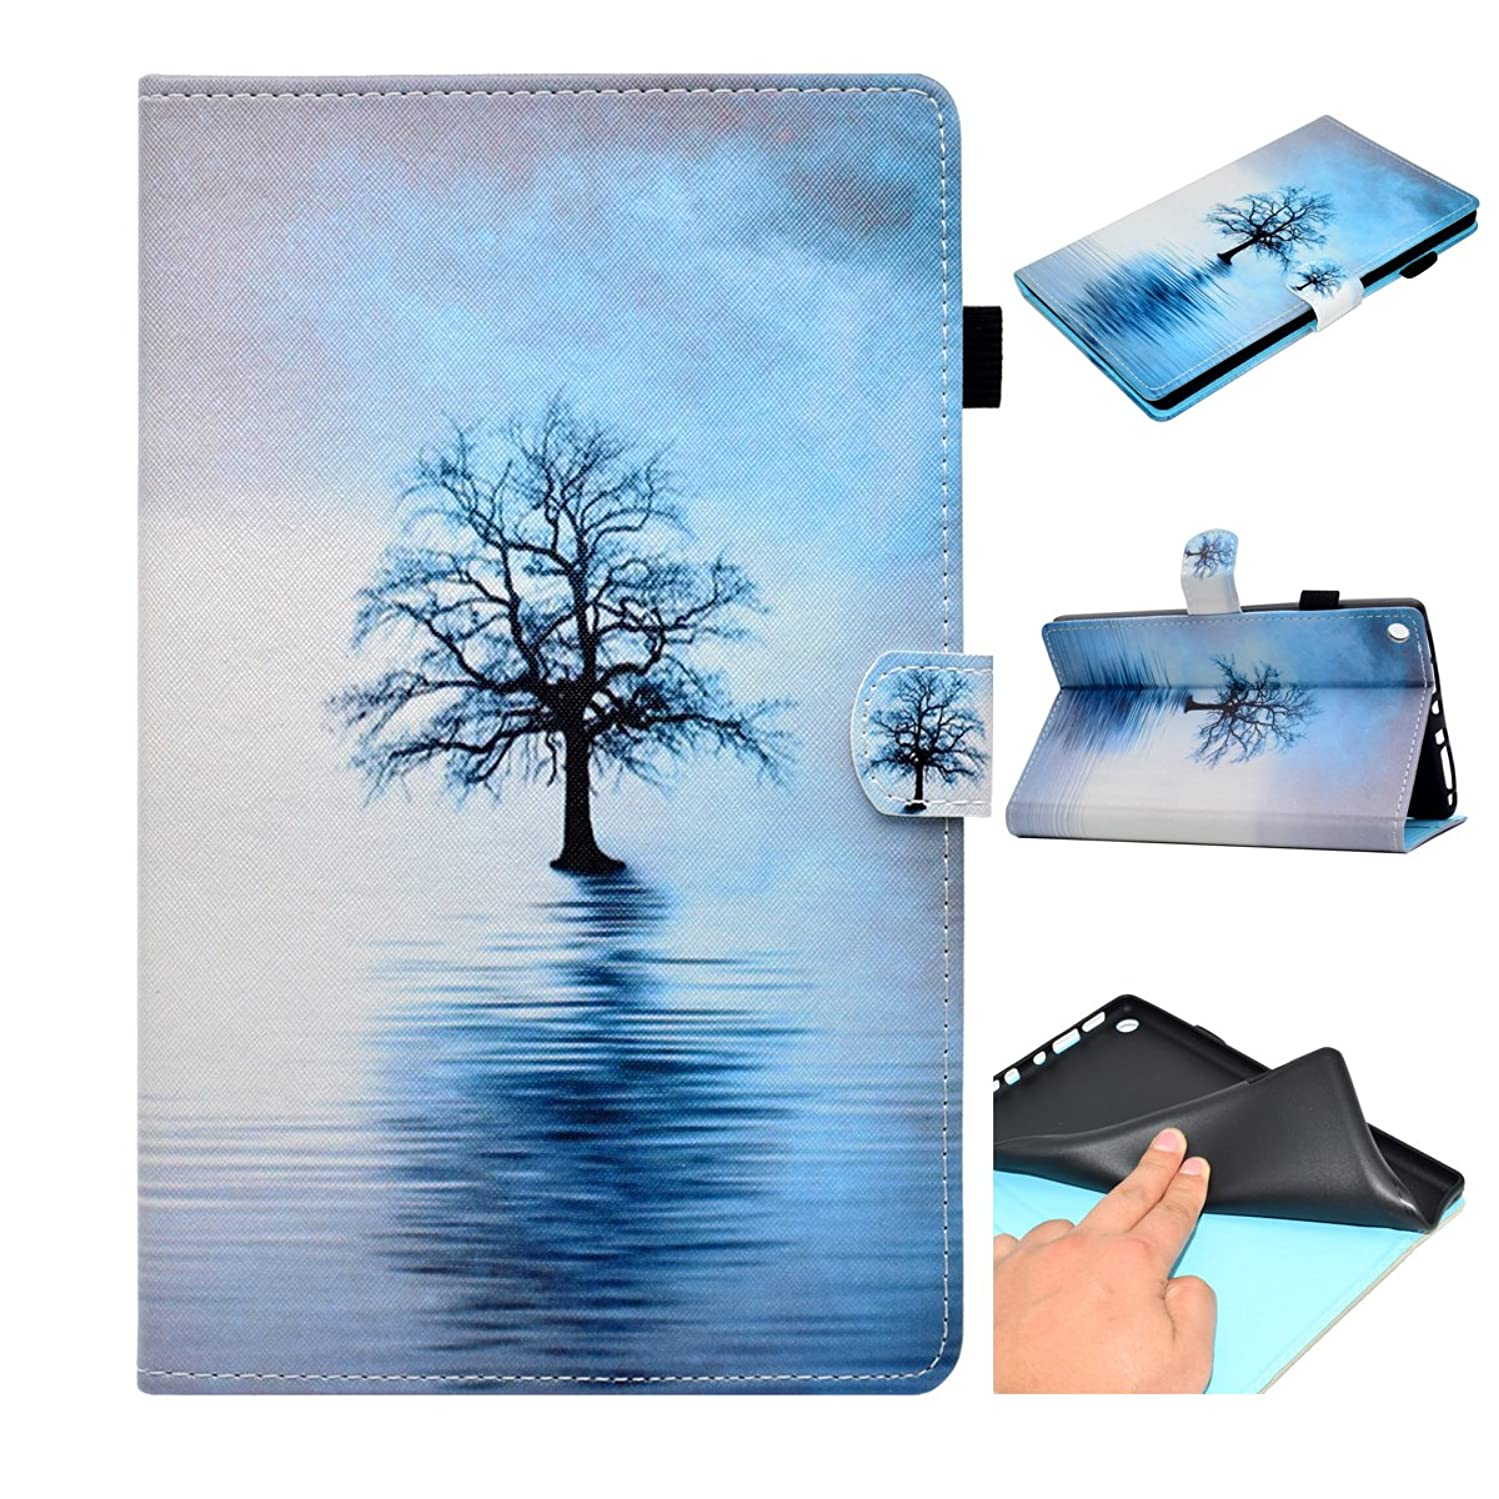 Dteck Case for Fire HD 8 Tablet 2018/2017/2016, Slim Lightweight PU Leather Magnetic Cute Flip Smart Stand Pocket Case Cover for All-New Kindle Fire HD 8 8.0 Inch 8th 7th 6th Generation-Tree in Sea